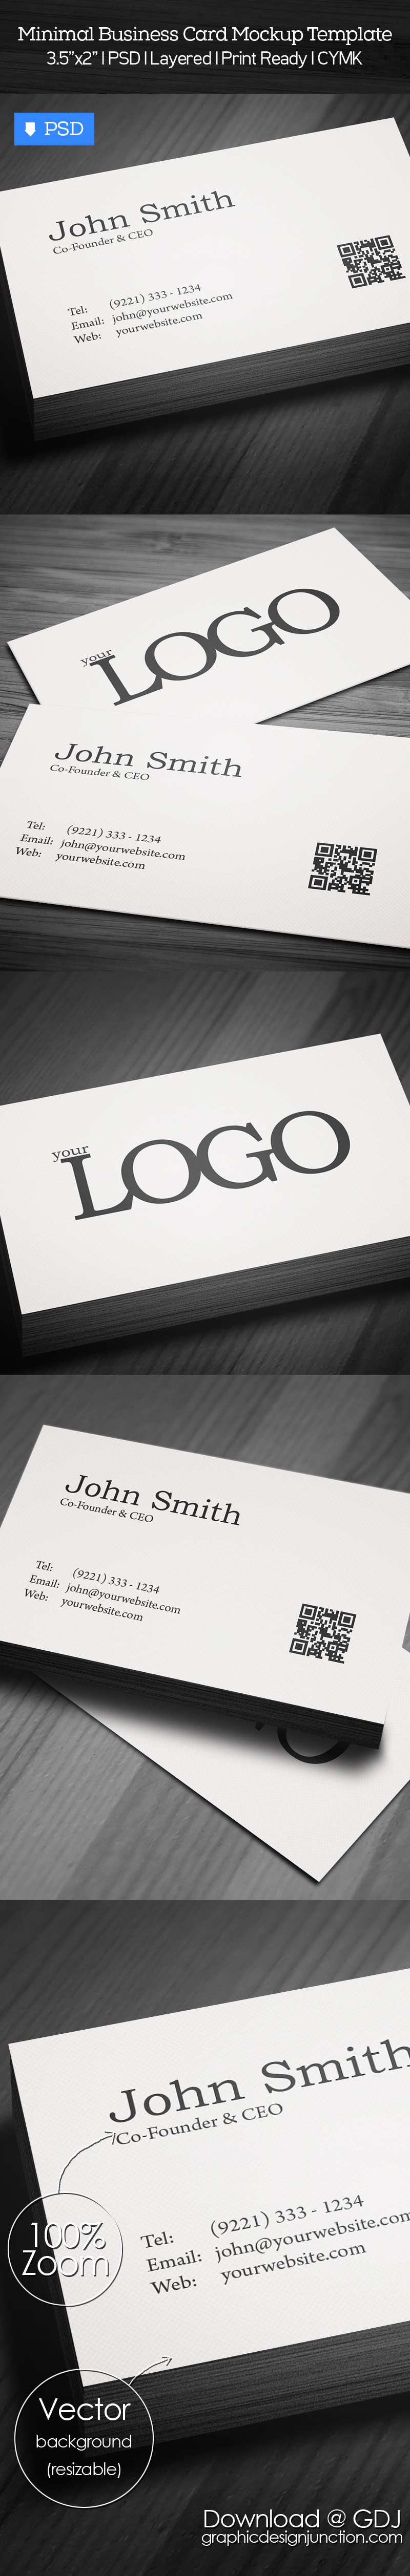 free minimal business card psd template freebies